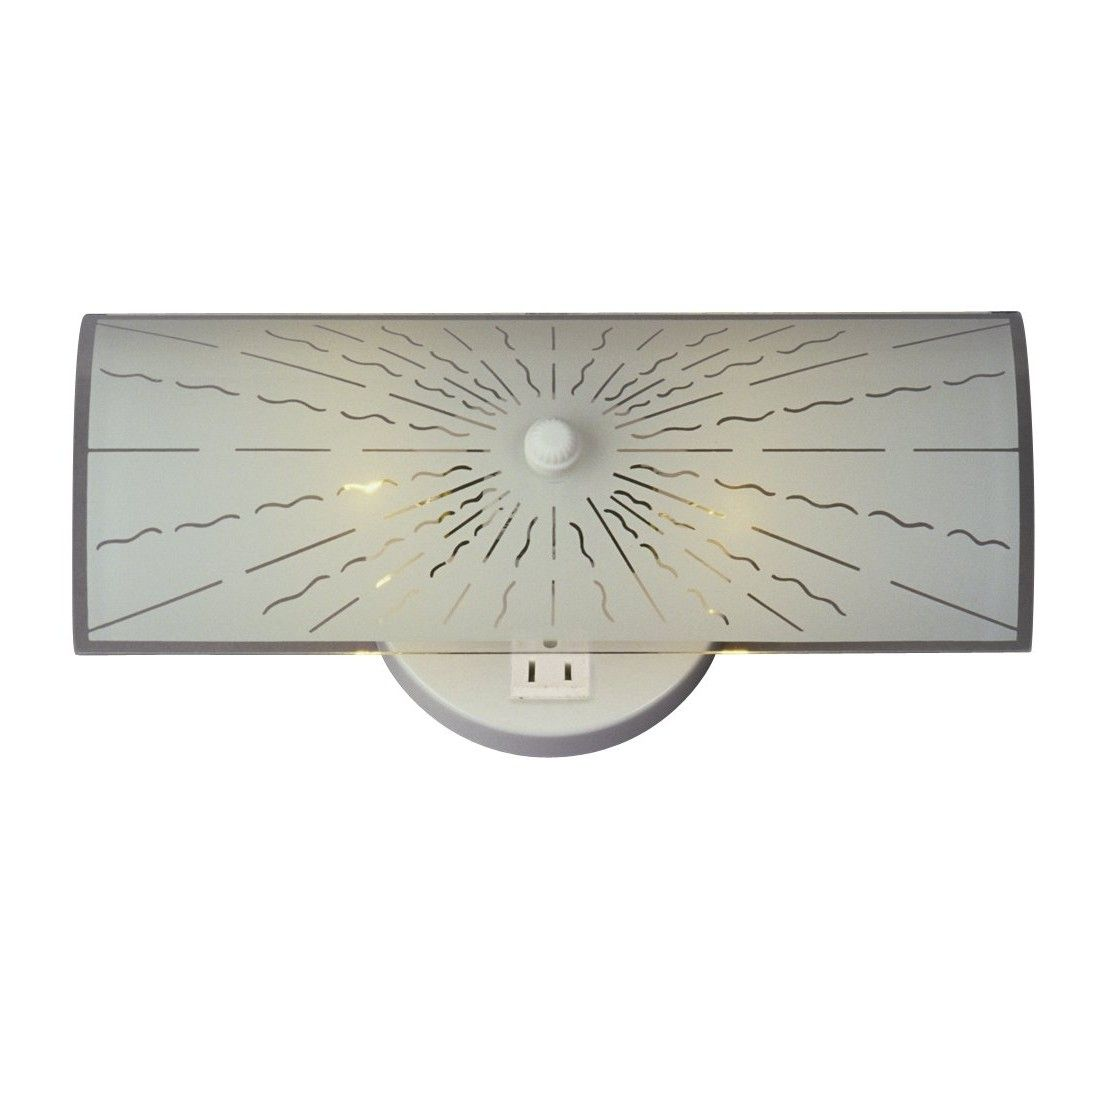 Bathroom Light Fixture With Electrical Outlet Attached Creative From Bathroom Light Fixtures With Electrical Outlet